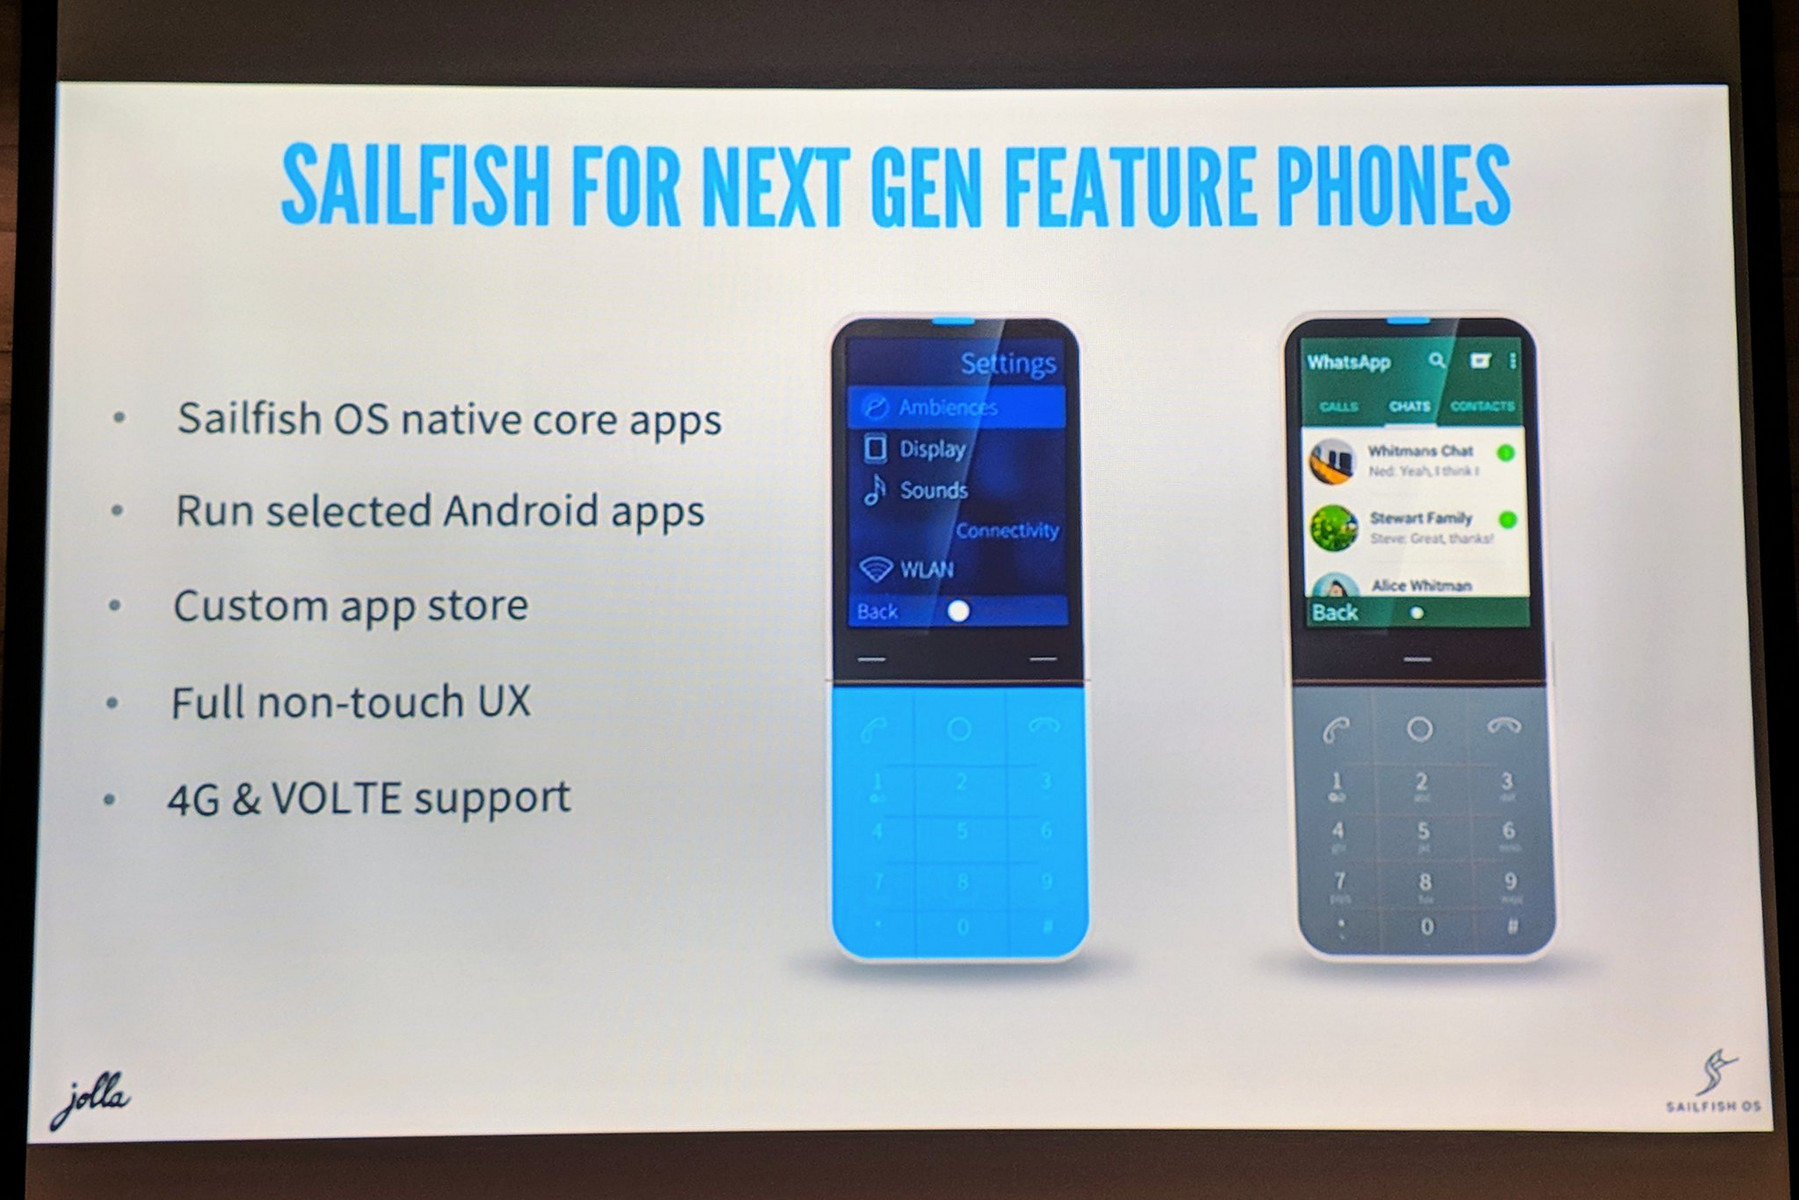 Jolla announces Sailfish 3 OS and expansion to new devices